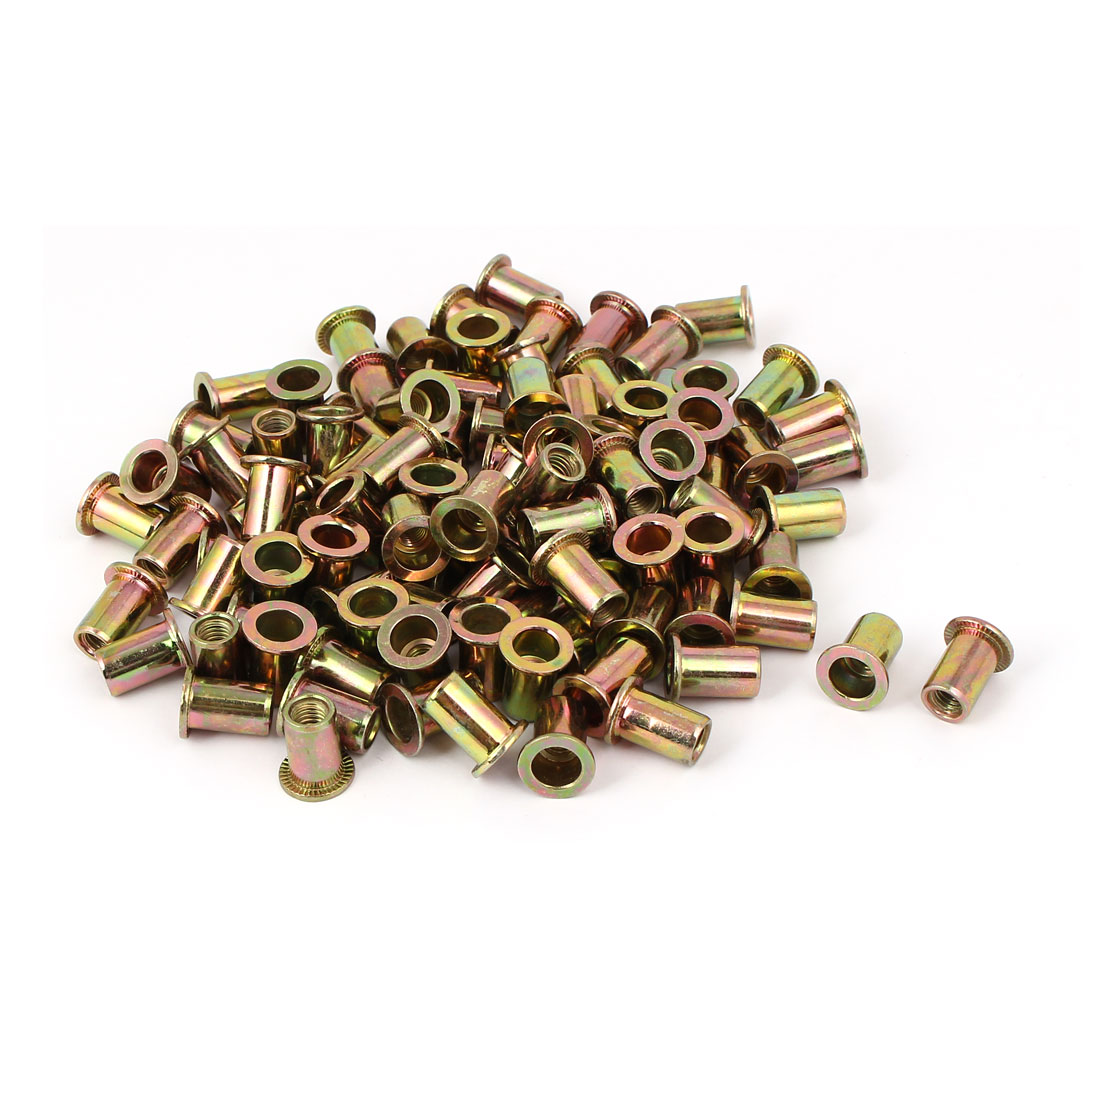 M6 x 15mm Flat Head Open Ended Rivet Nut Embedded Insert Nutsert 100PCS